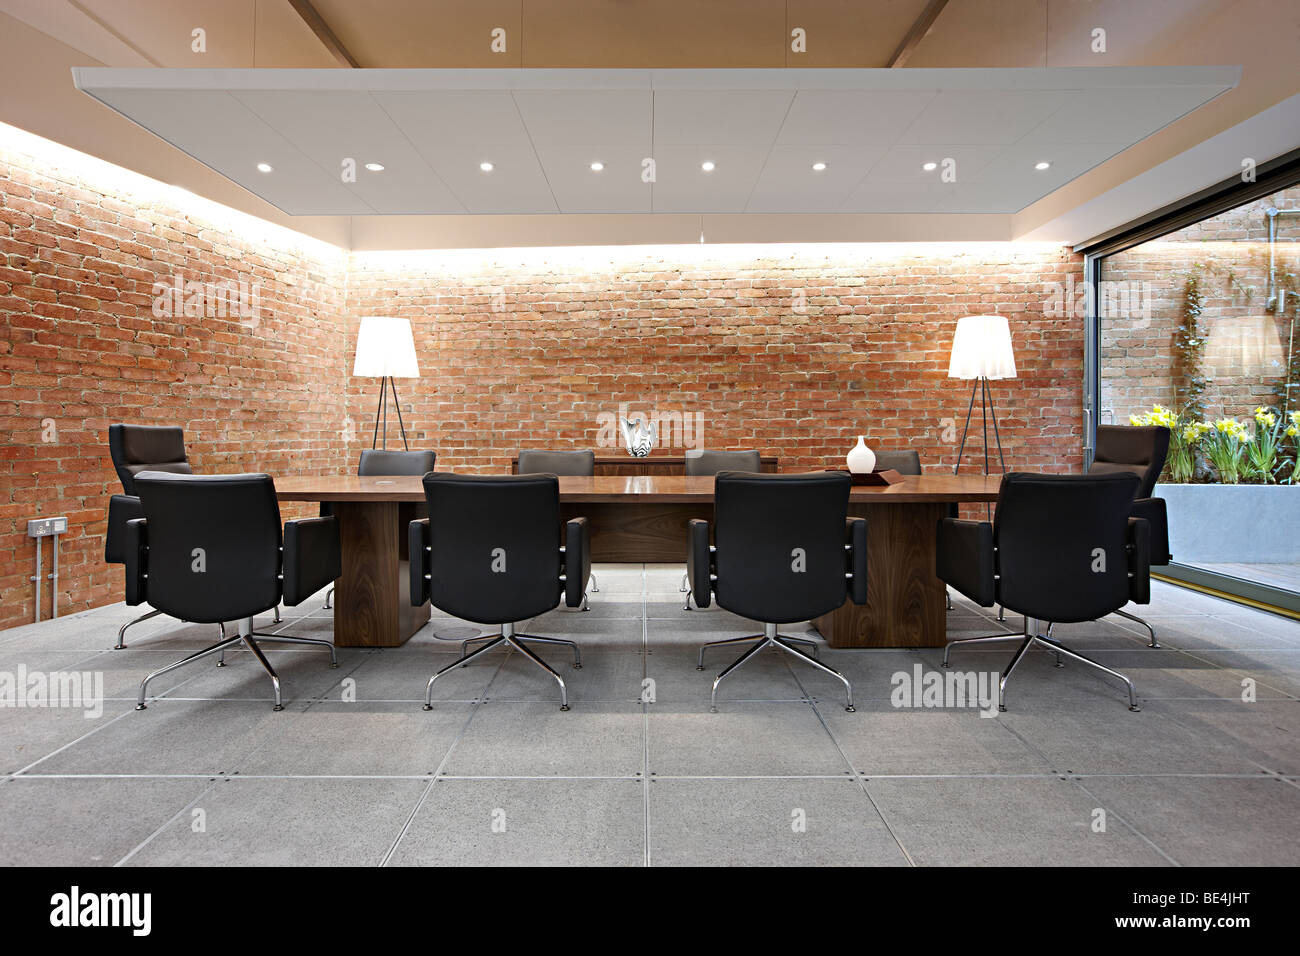 Meeting Room Tables Executive Meeting Room Conference Table Stock Photo 25917972 Alamy